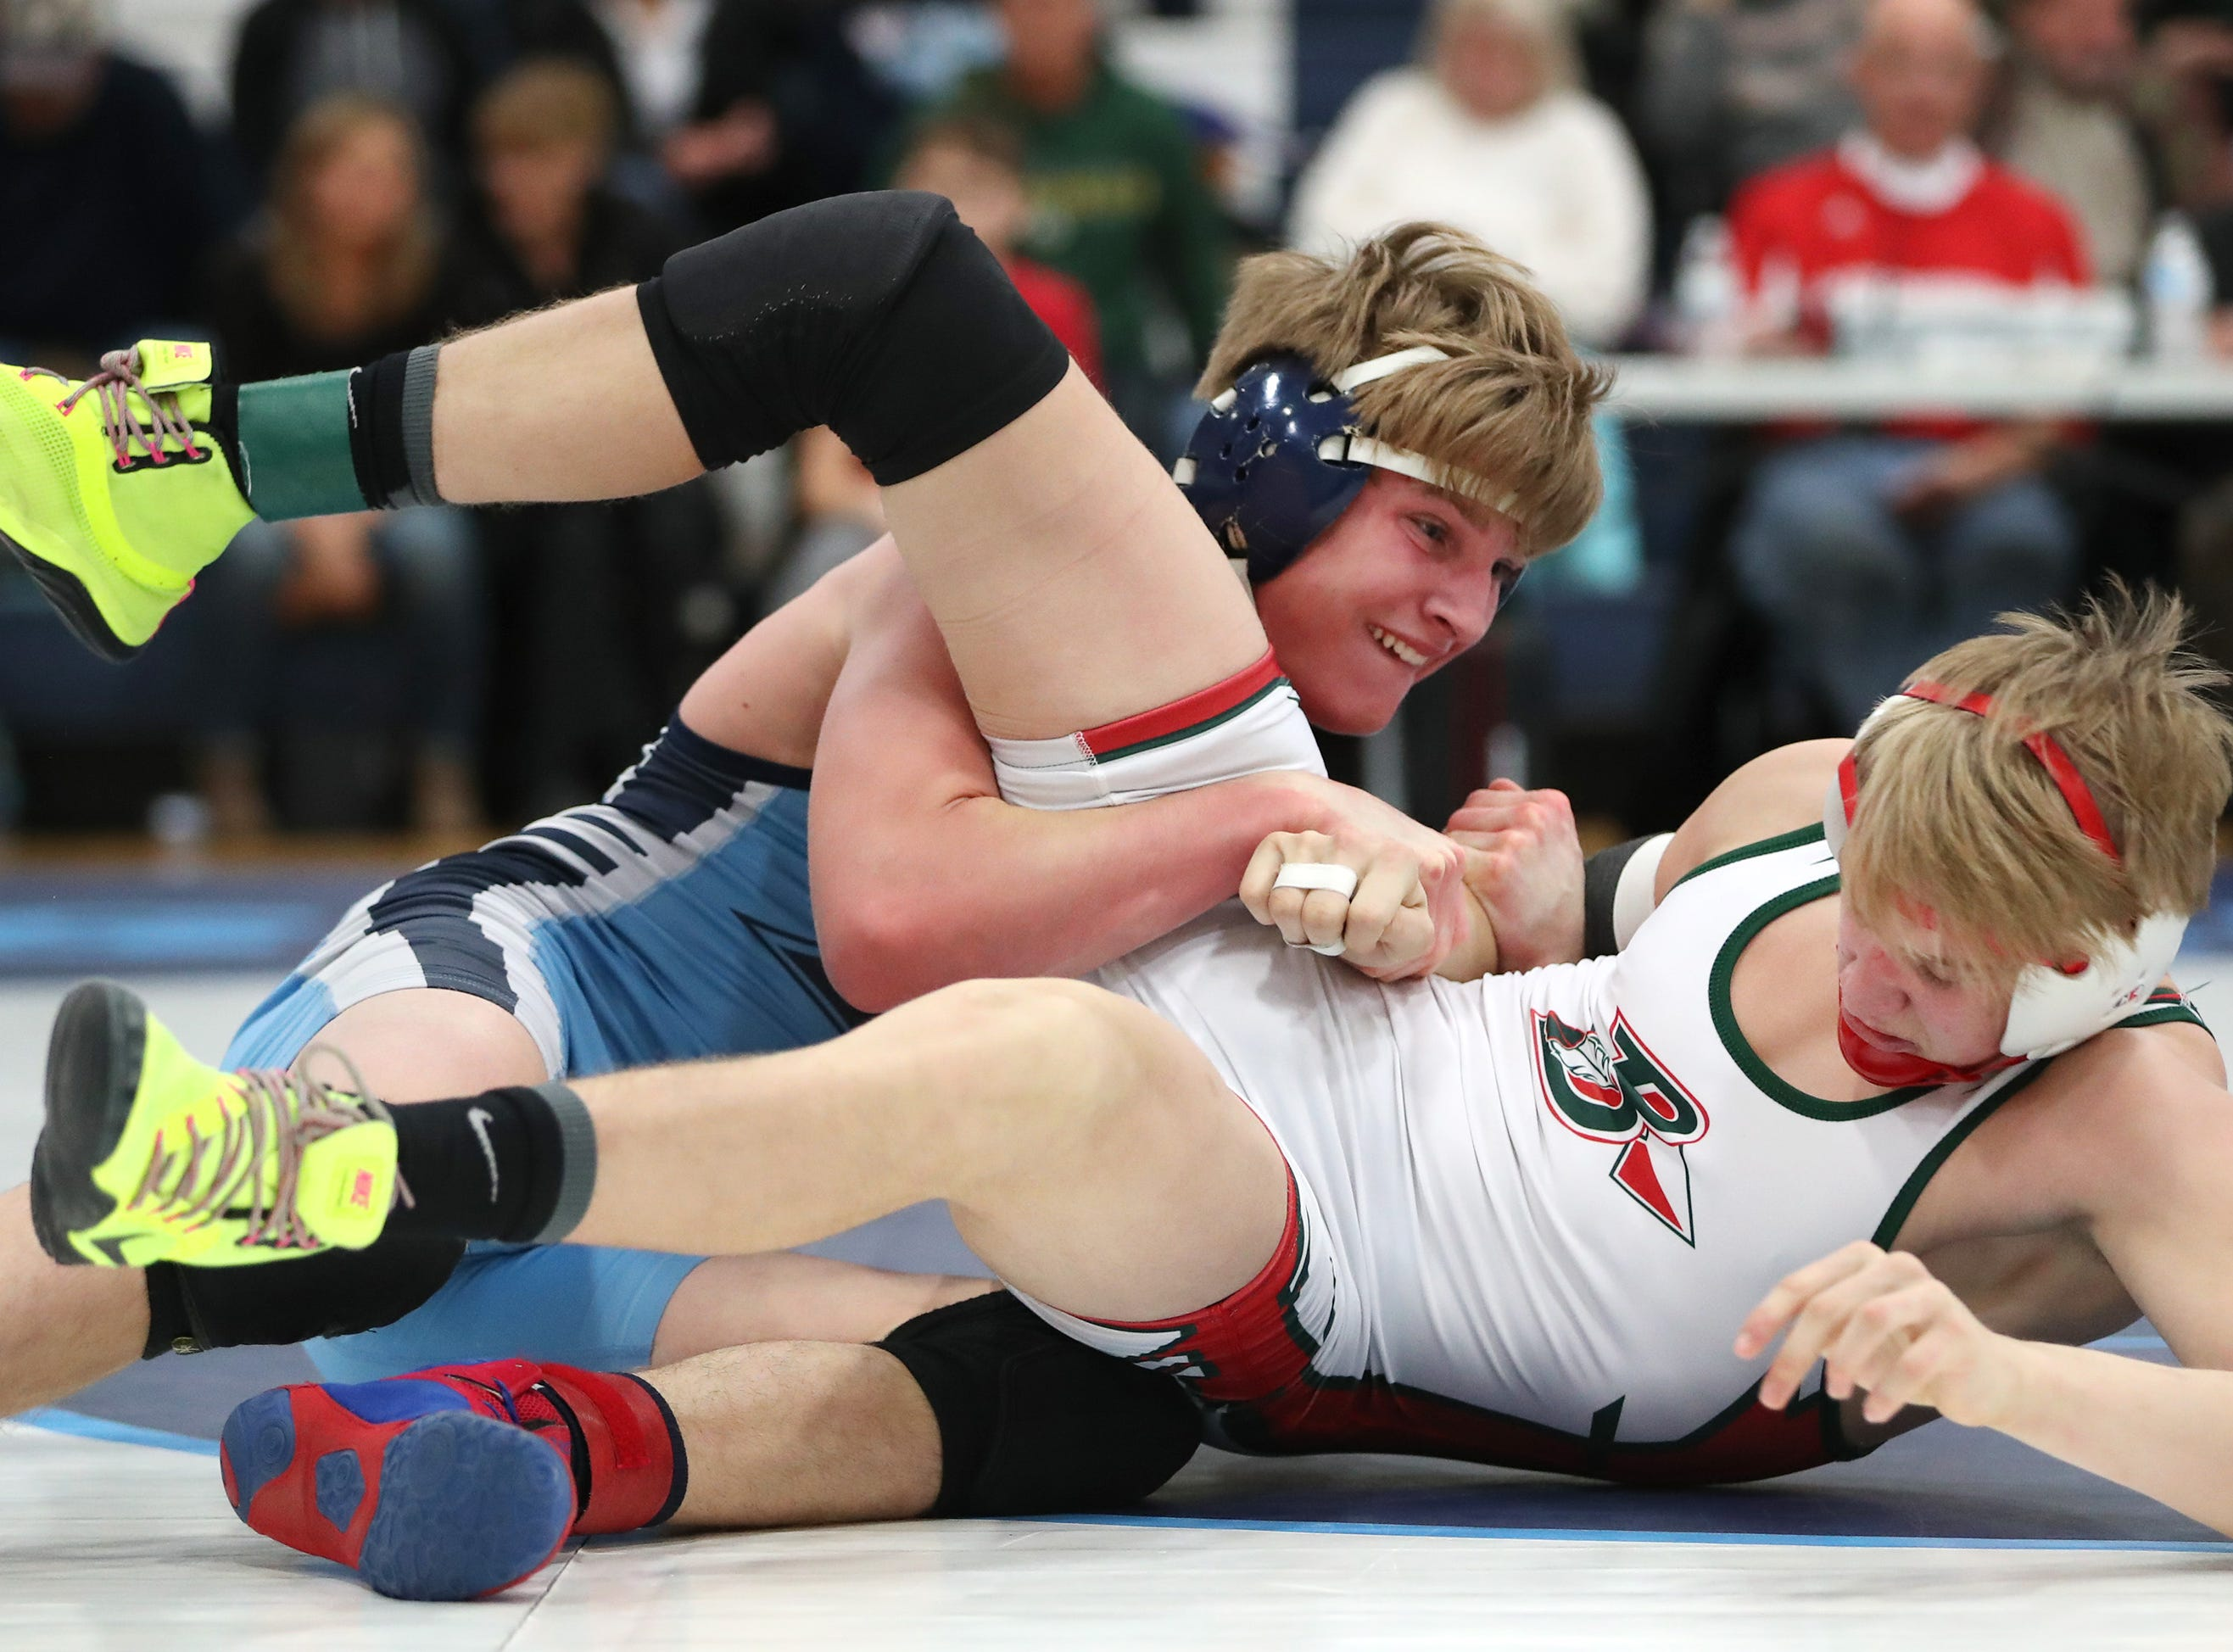 Little Chute's Adam Kilgas tries to control Berlin's Bryce Congdon during their 145-pound first place match in the D2 wrestling regional Saturday Feb. 9, 2019, in Little Chute, Wis. Kilgas won the match 8-3.